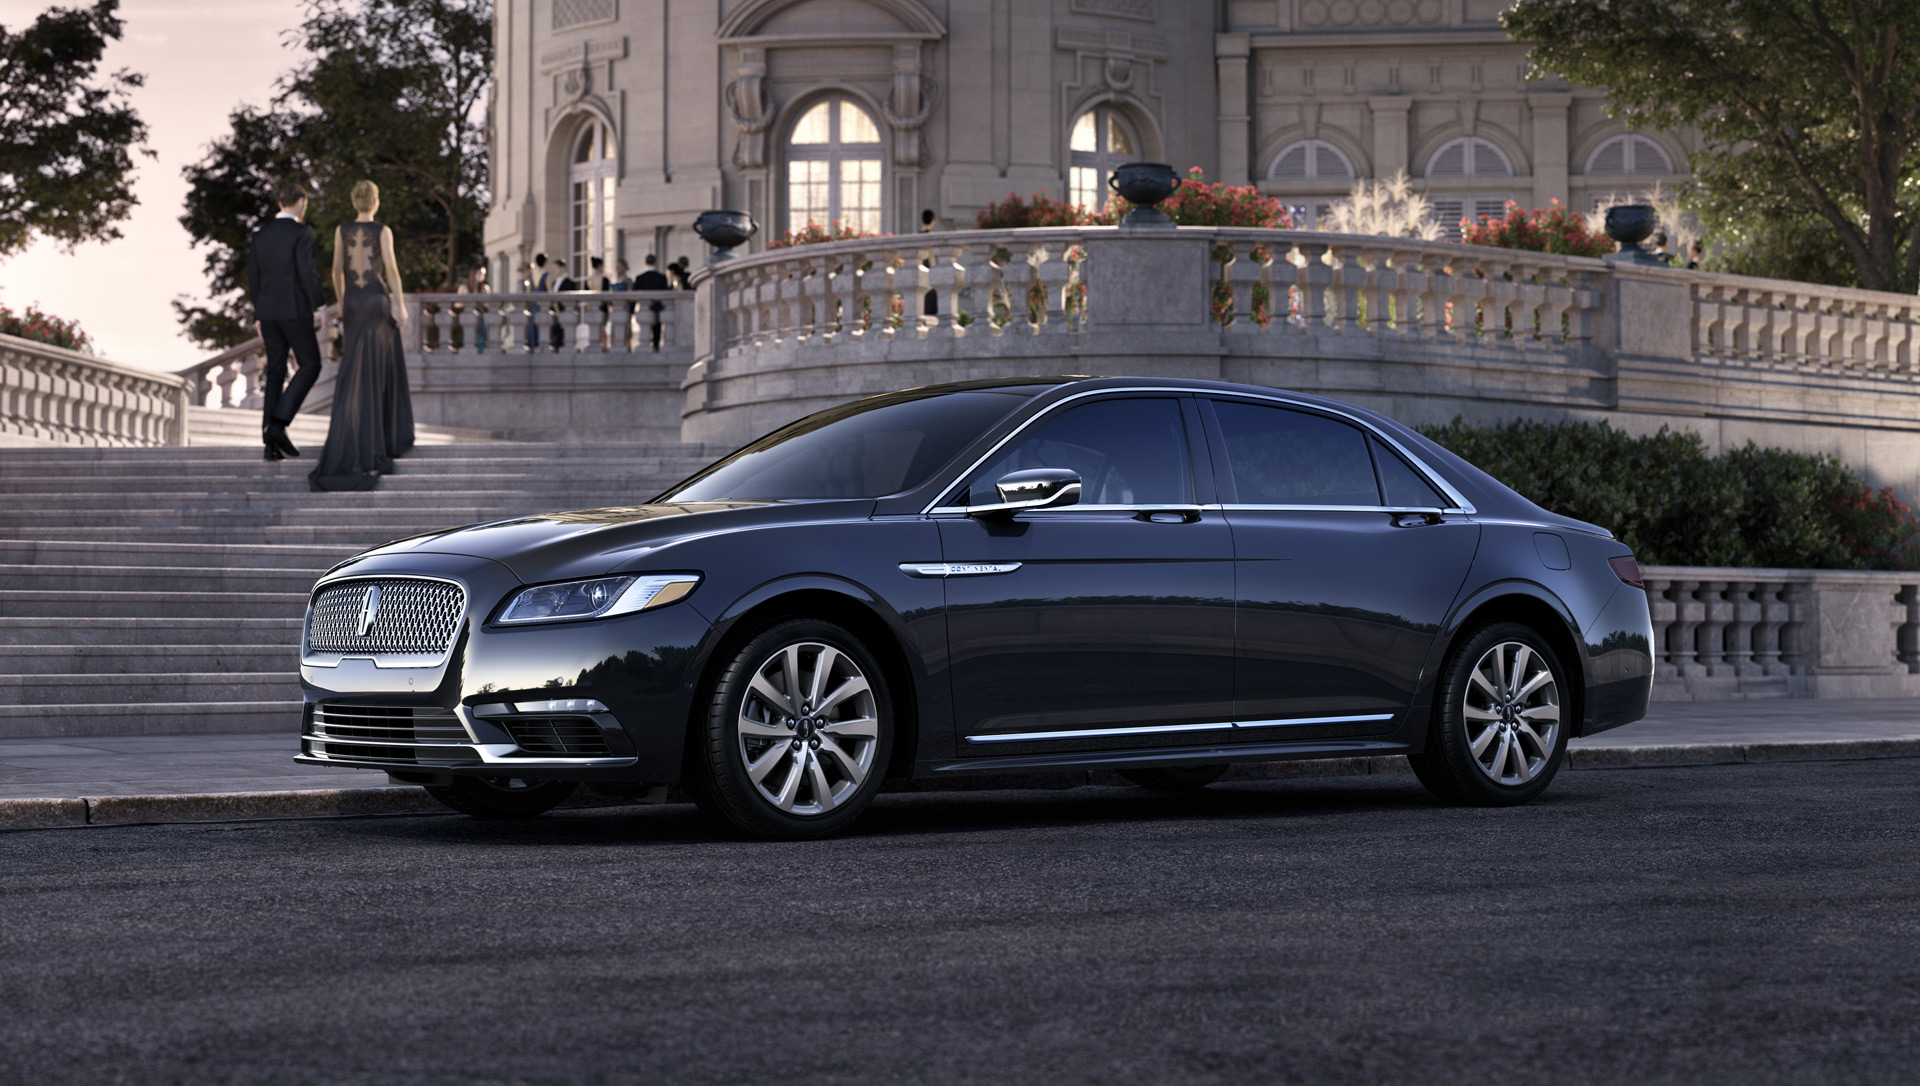 Cars For Sale Indianapolis >> 2017 Lincoln Continental Review, Ratings, Specs, Prices, and Photos - The Car Connection